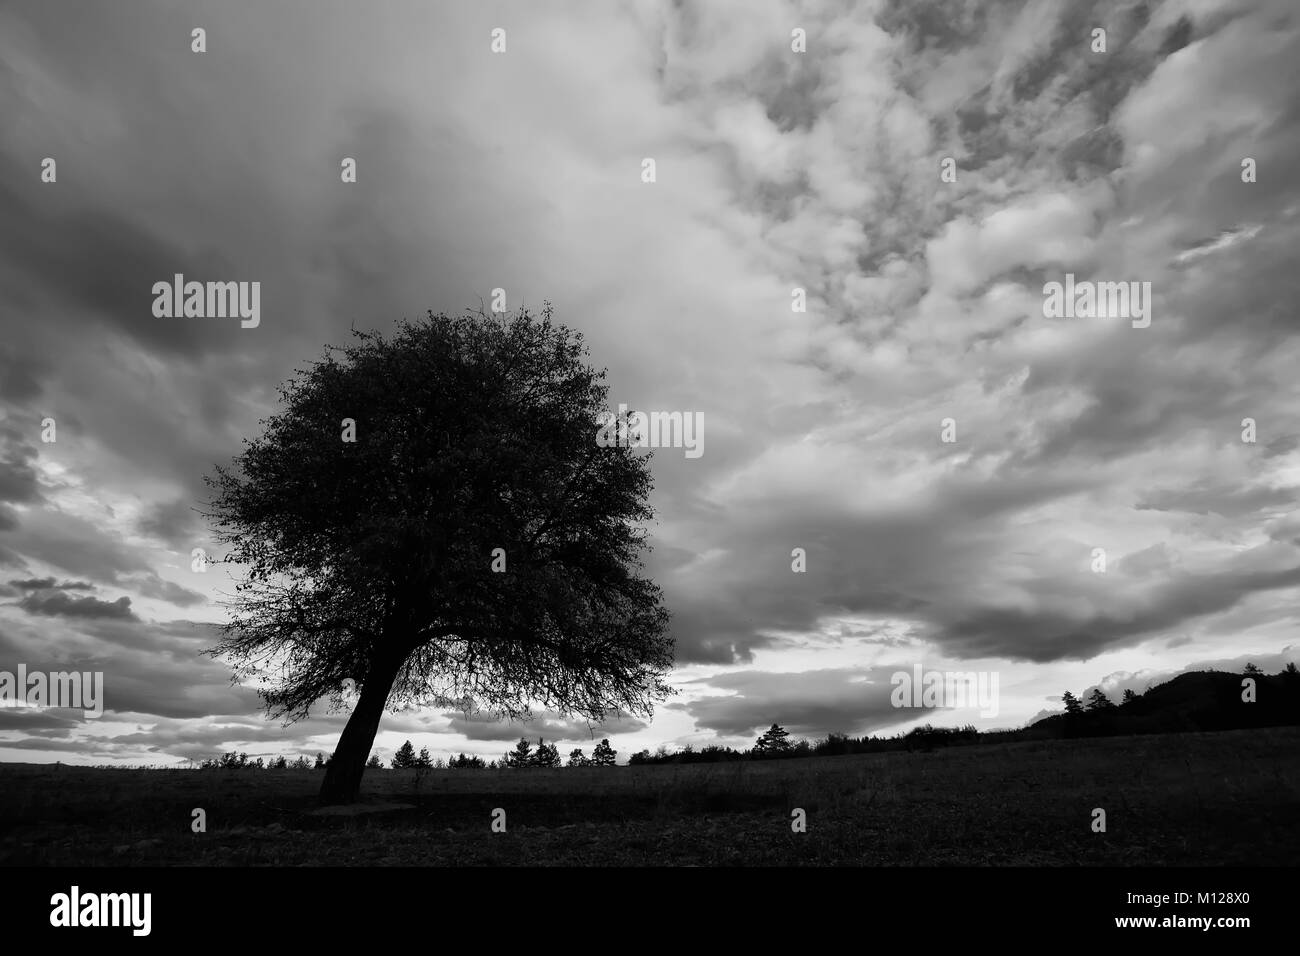 high contrasted black and white cloudscape with tree silhouette in foreground - Stock Image